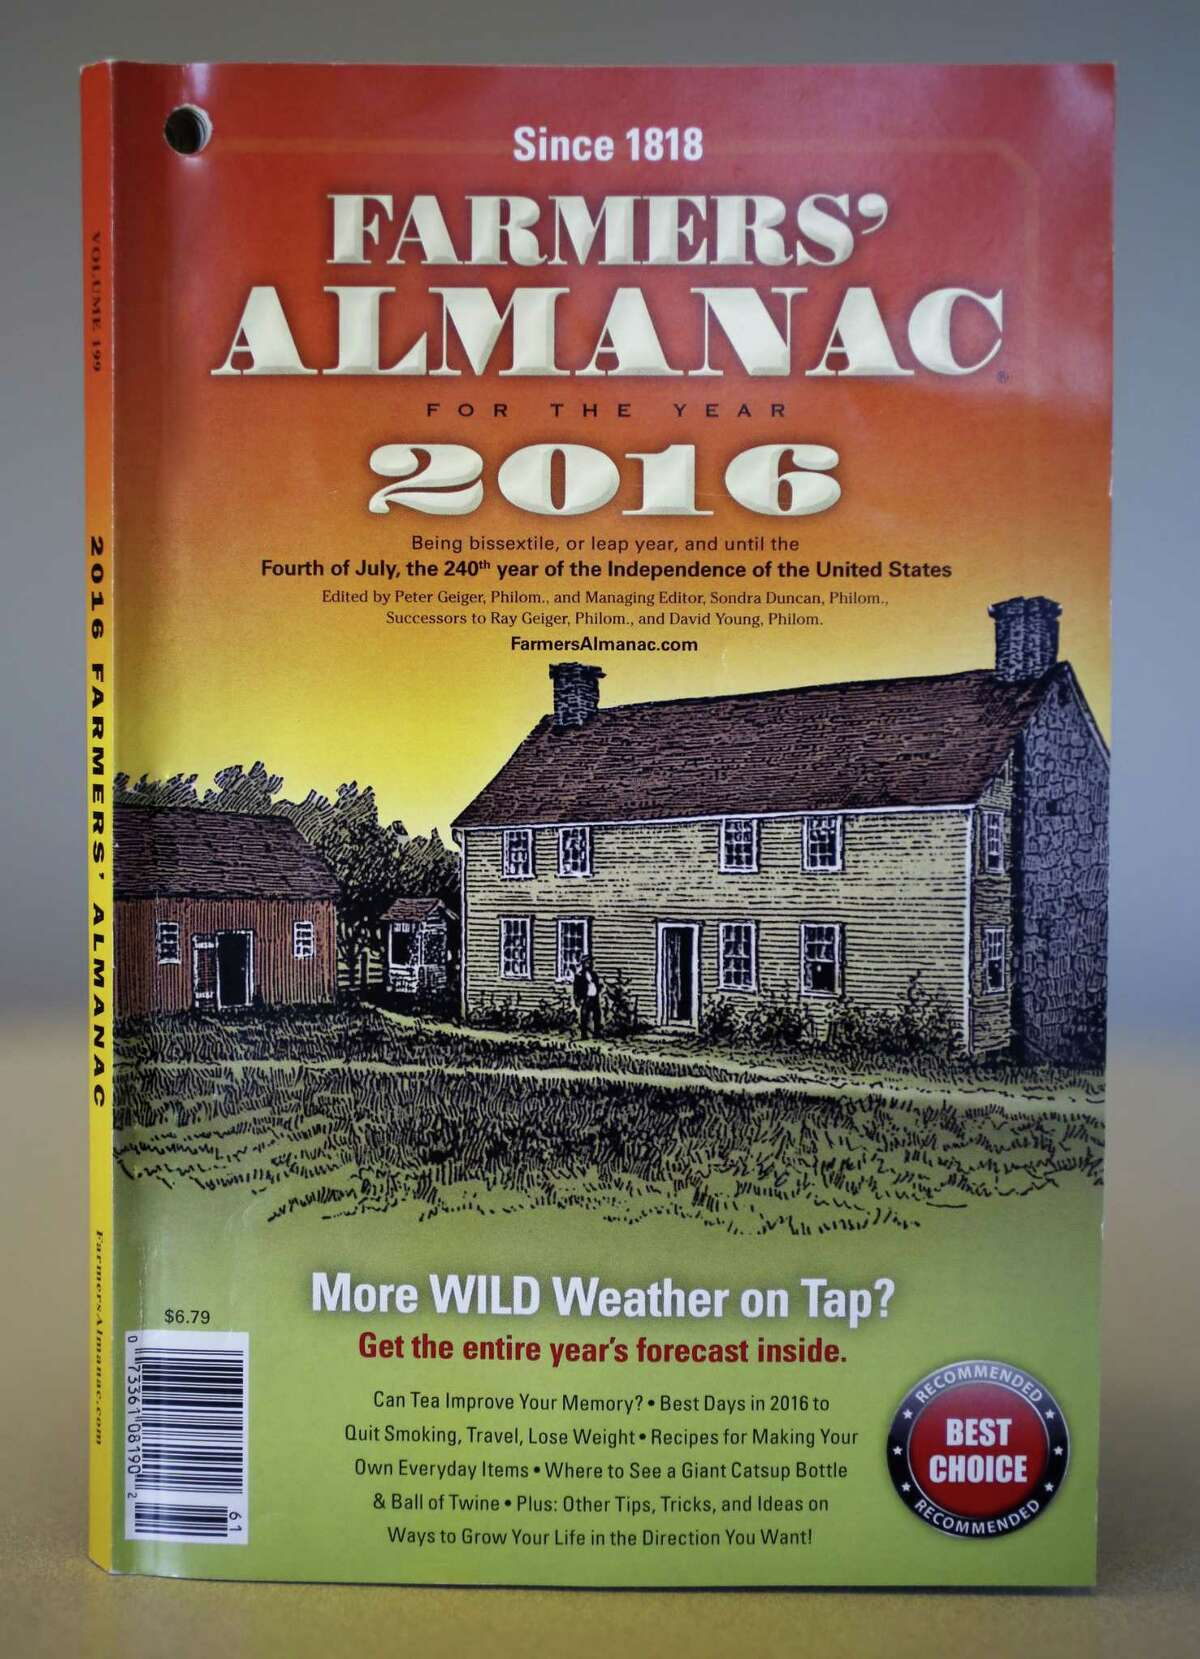 A copy of the 2016 Farmers' Almanac, photographed in Portland, Maine on Aug. 14, 2015.